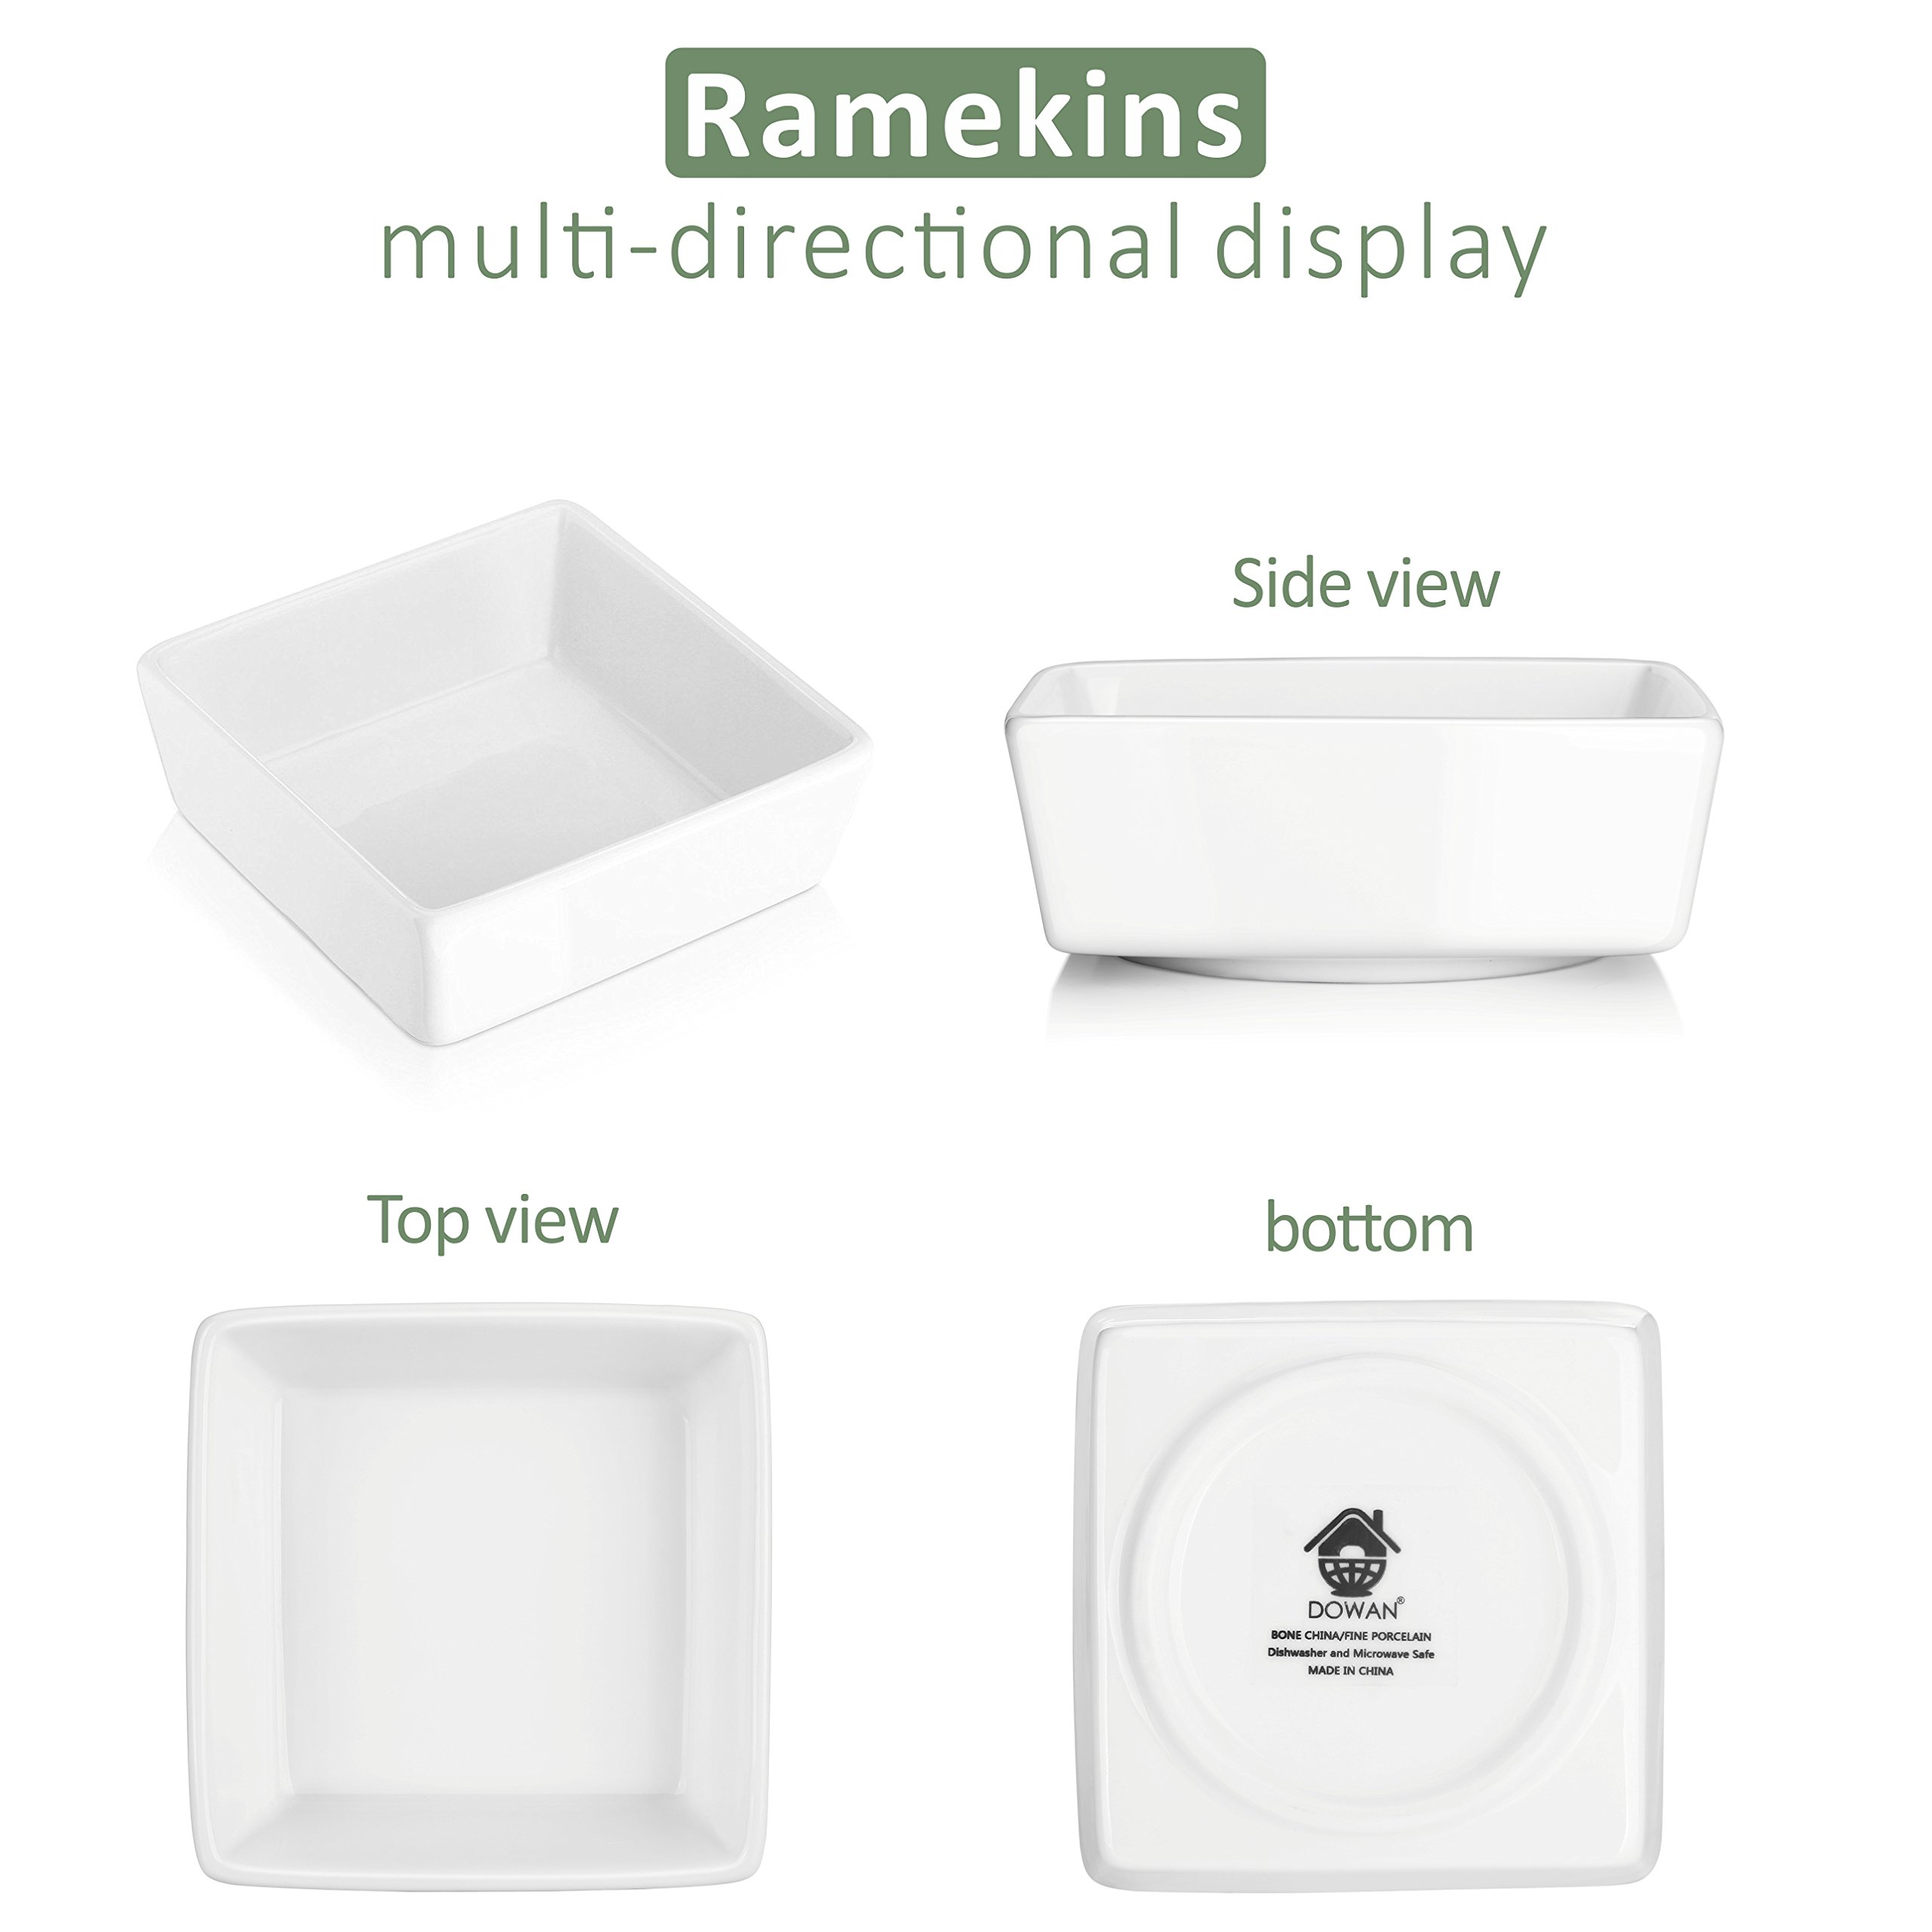 DOWAN 6oz Porcelain Ramekins - 6 Packs, White by DOWAN (Image #5)